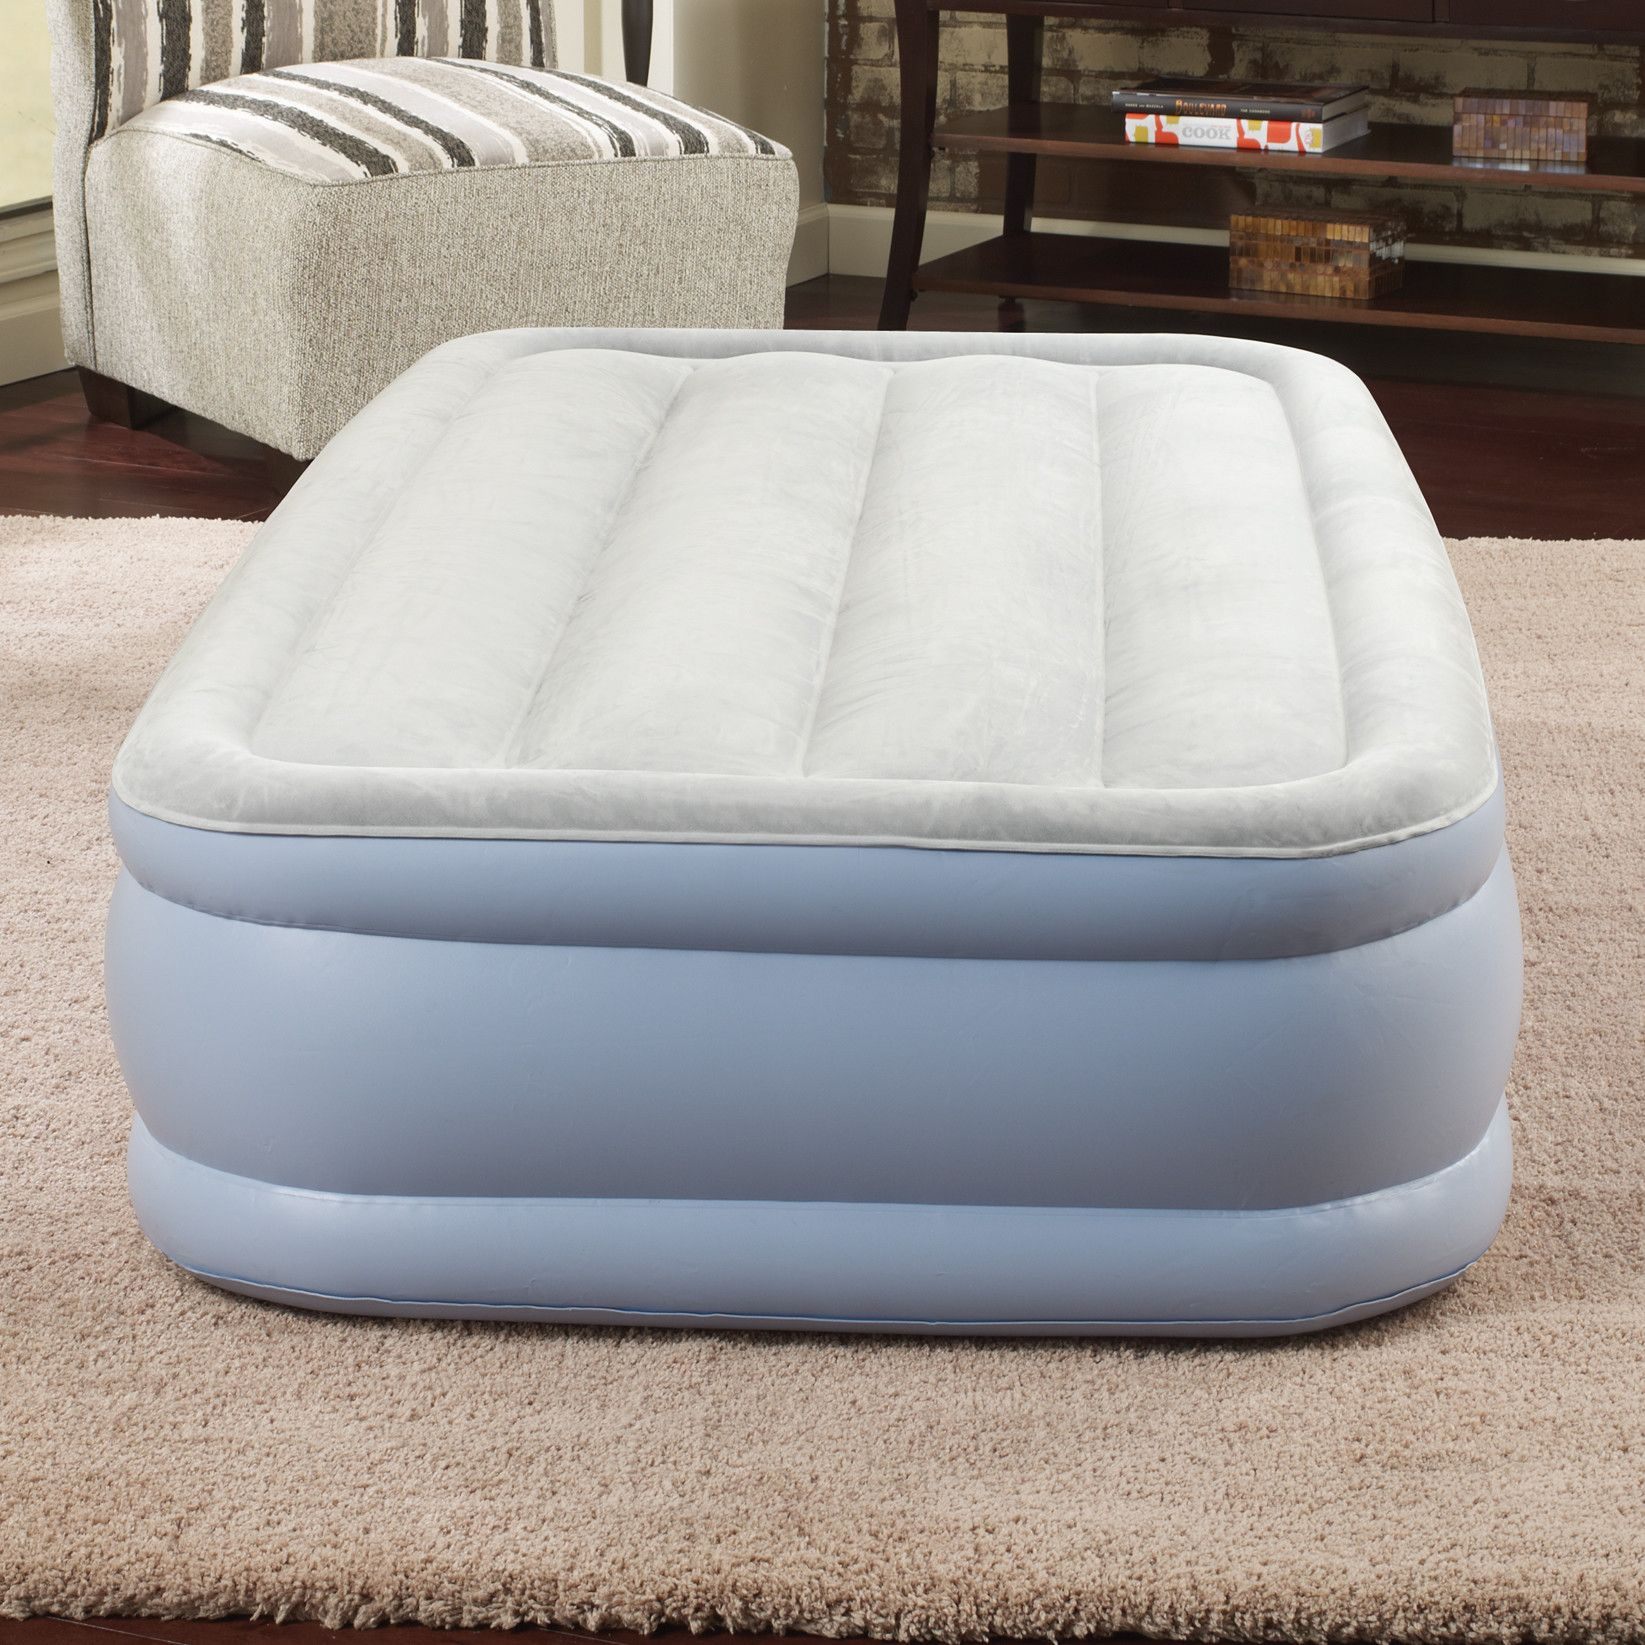 air mattress products pinterest air mattress simmons